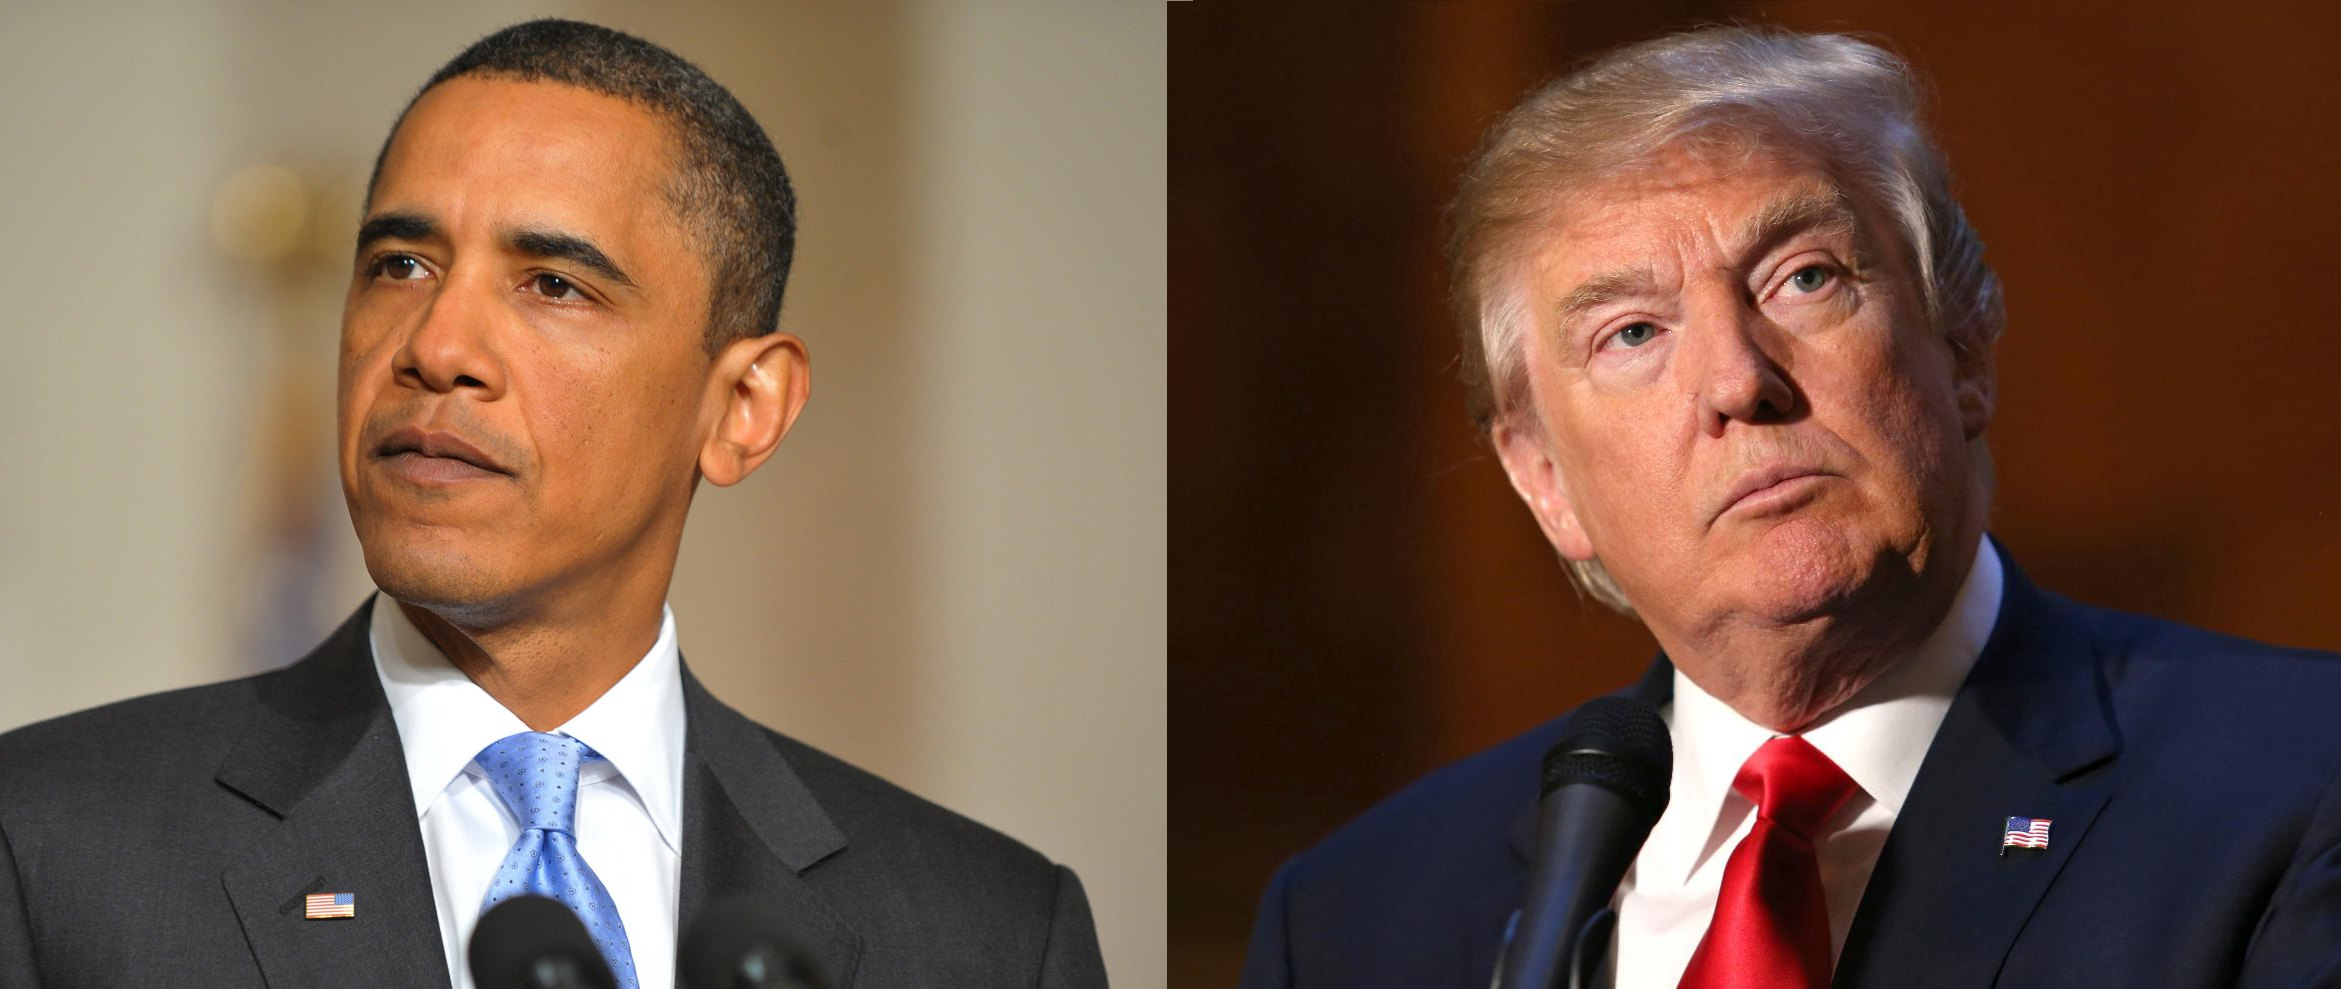 Barack Obama or Donald Trump - who is the better leader?